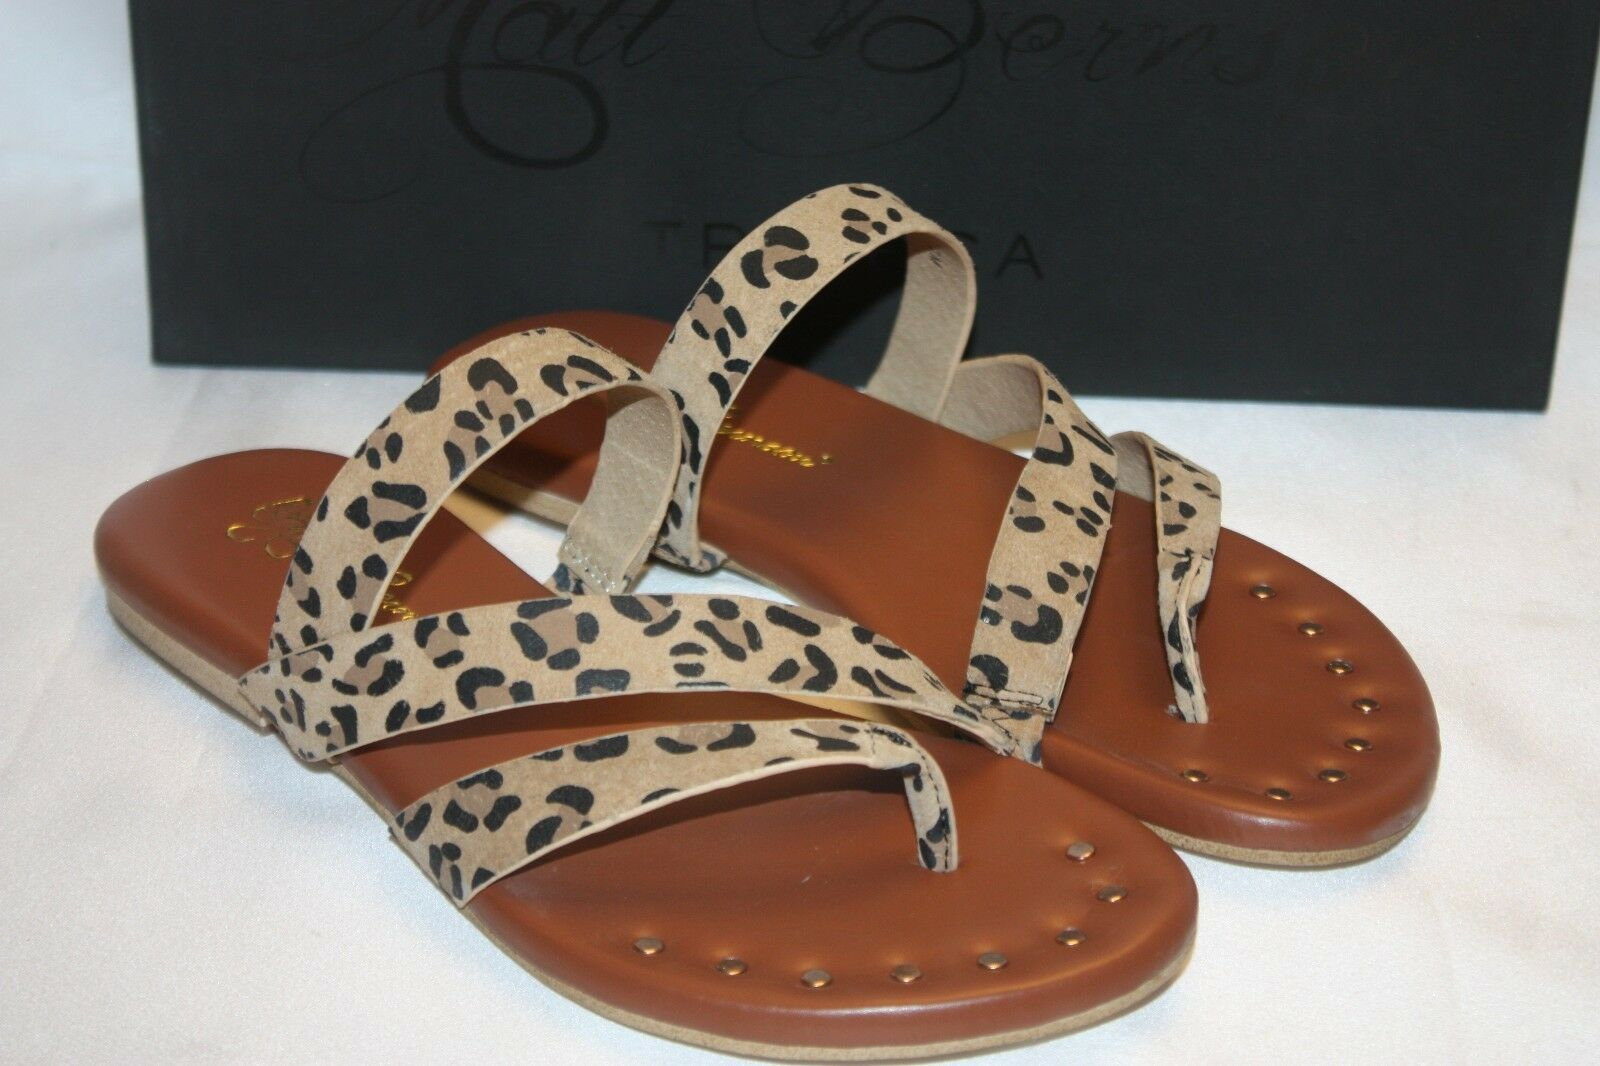 NEW! NIB! MATT BERNSON New York Tan Leopard Suede Leather Flat Sandal Sz 6 $110